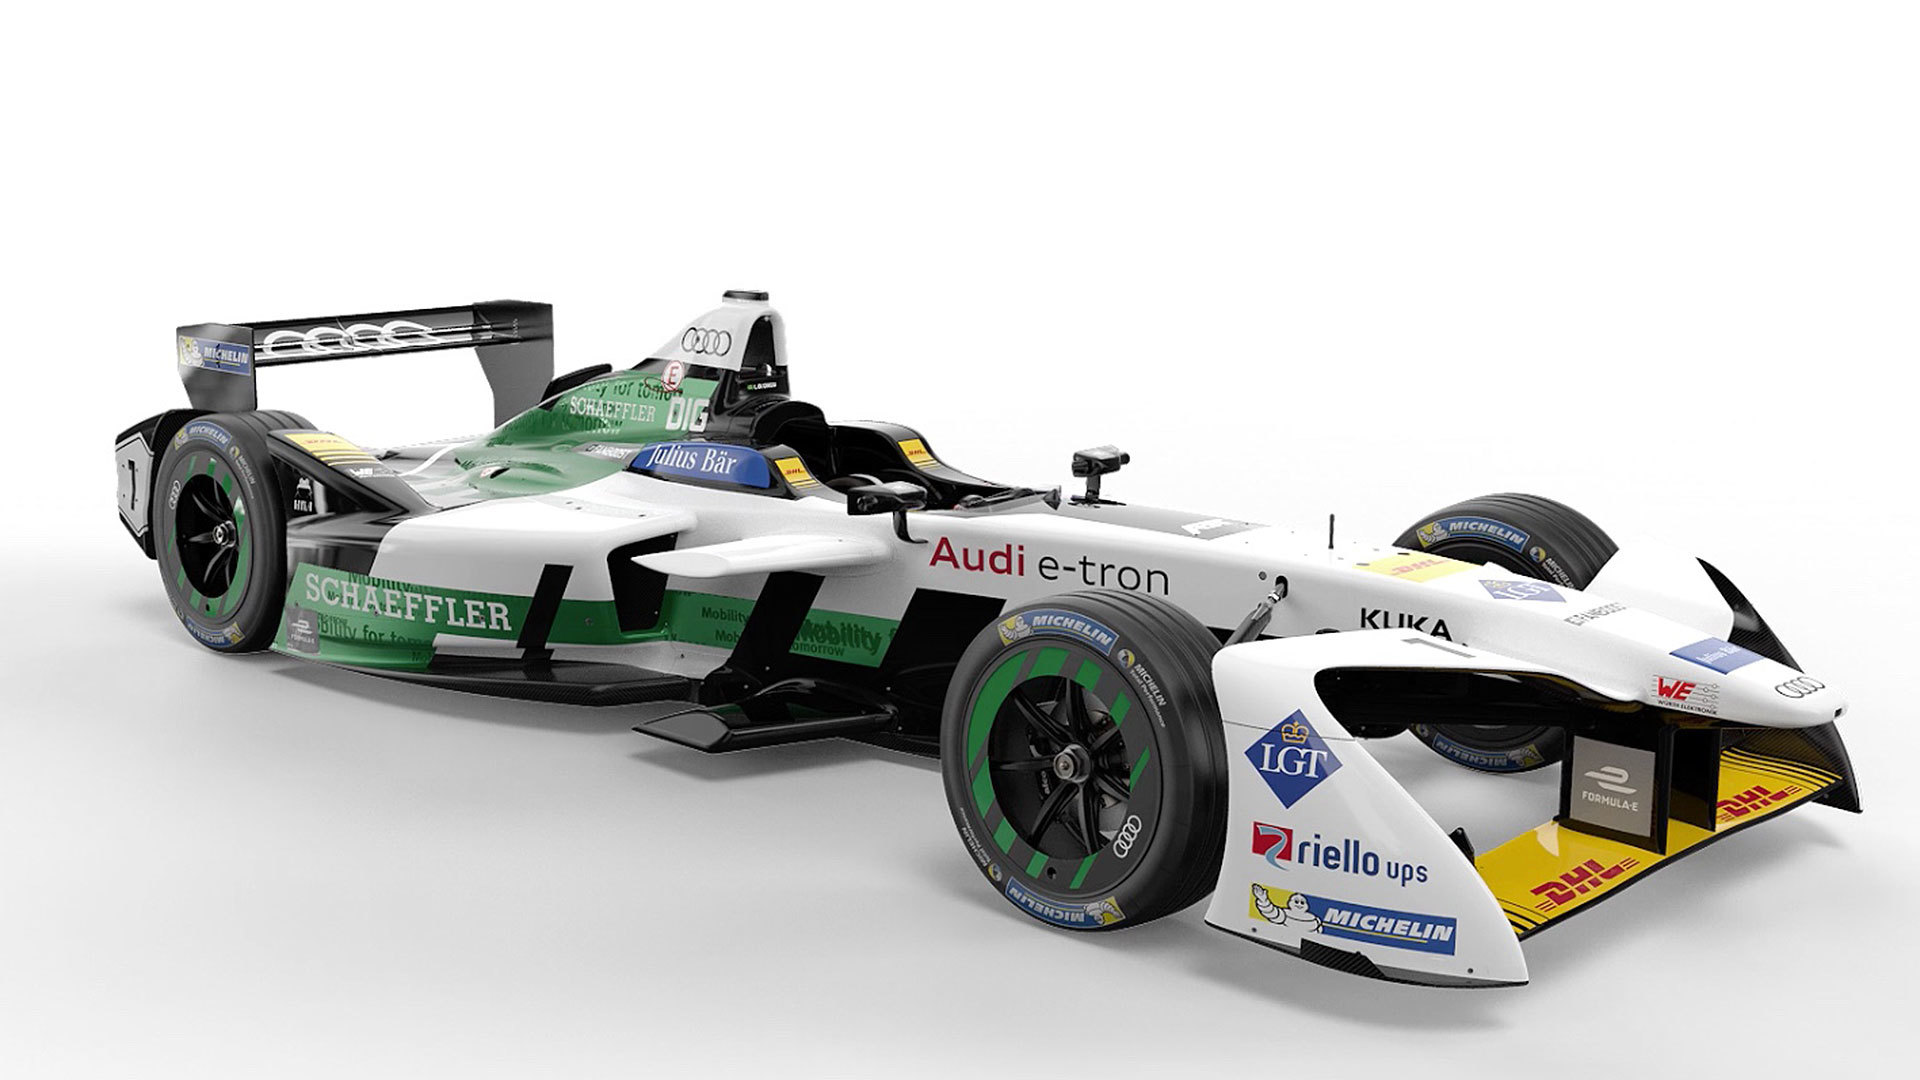 The Audi e-tron FE04 for Formula E